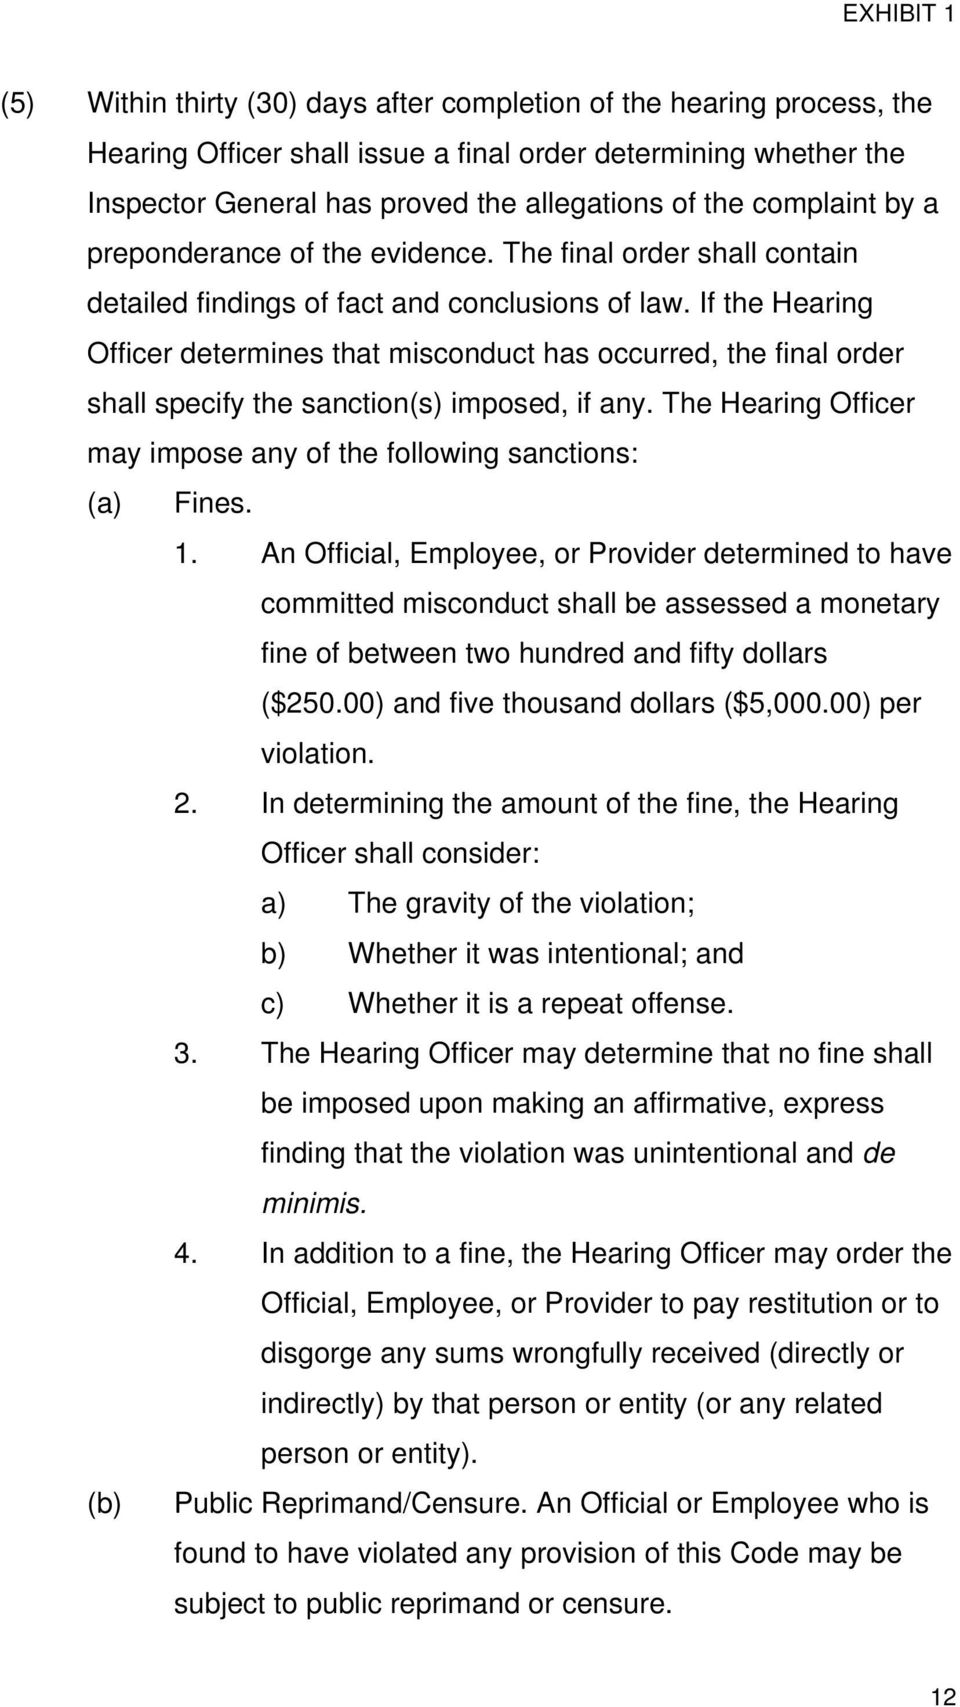 If the Hearing Officer determines that misconduct has occurred, the final order shall specify the sanction(s) imposed, if any. The Hearing Officer may impose any of the following sanctions: (a) Fines.